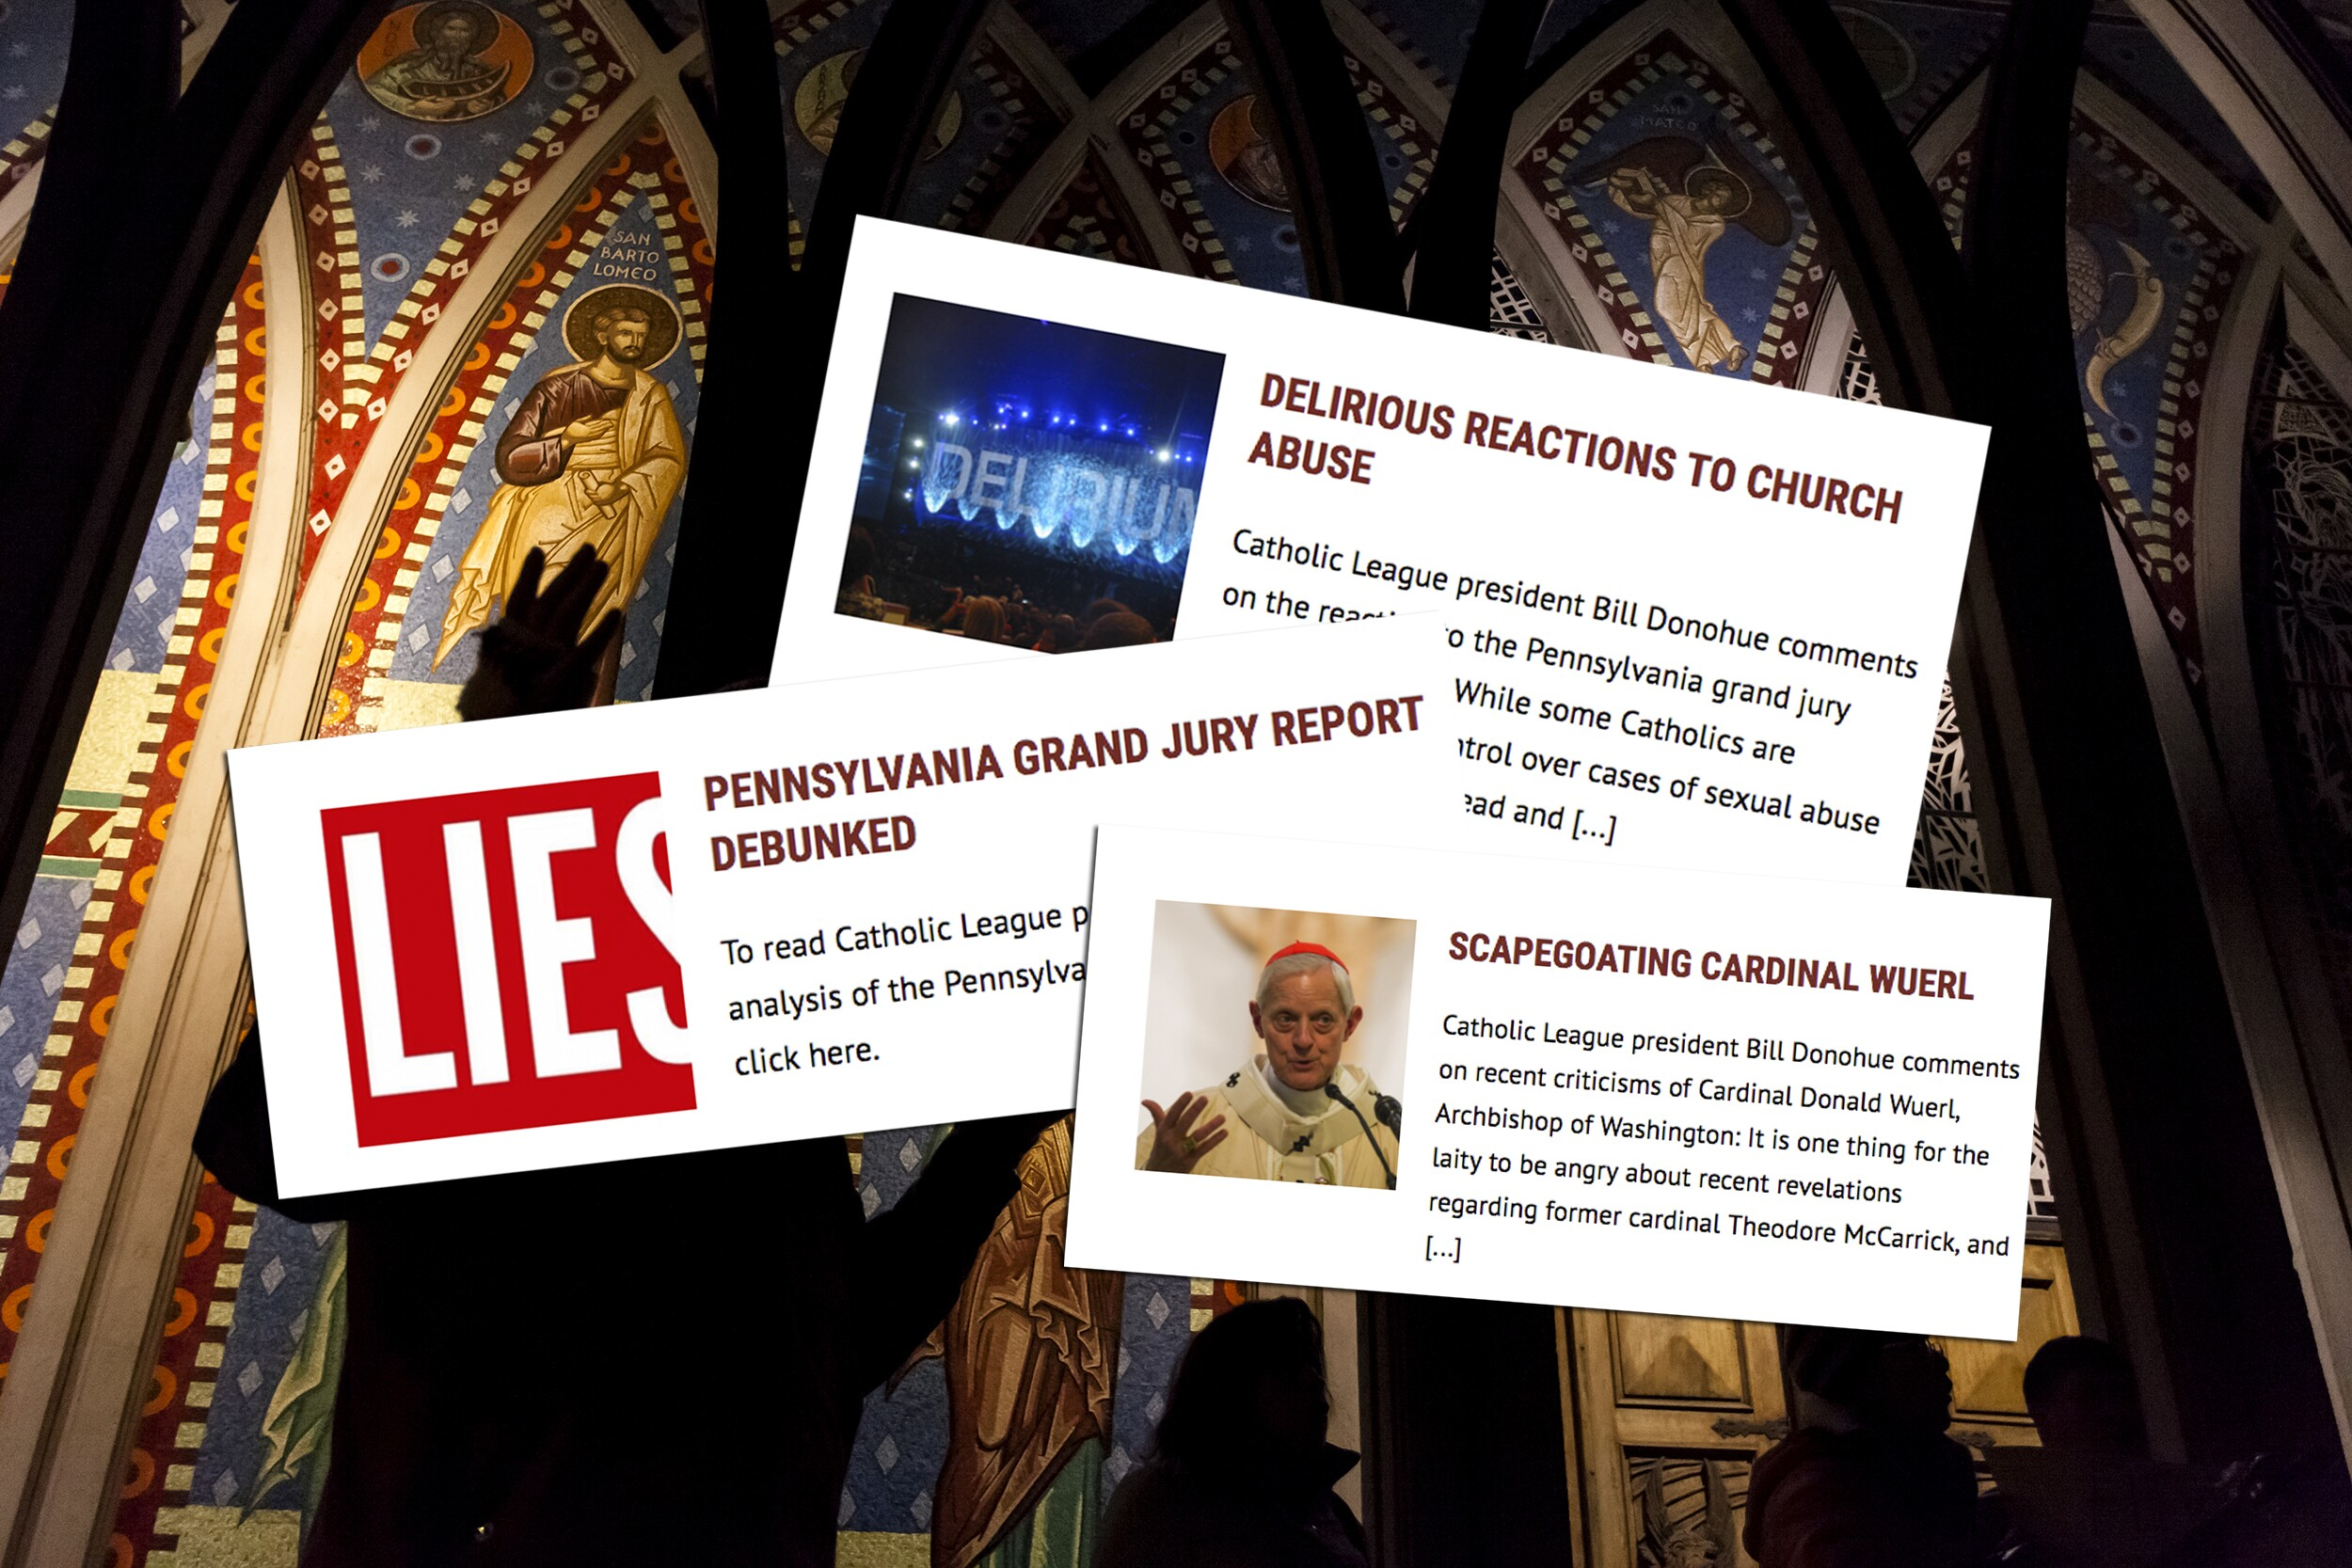 The Catholic League's Reprehensible Response to the